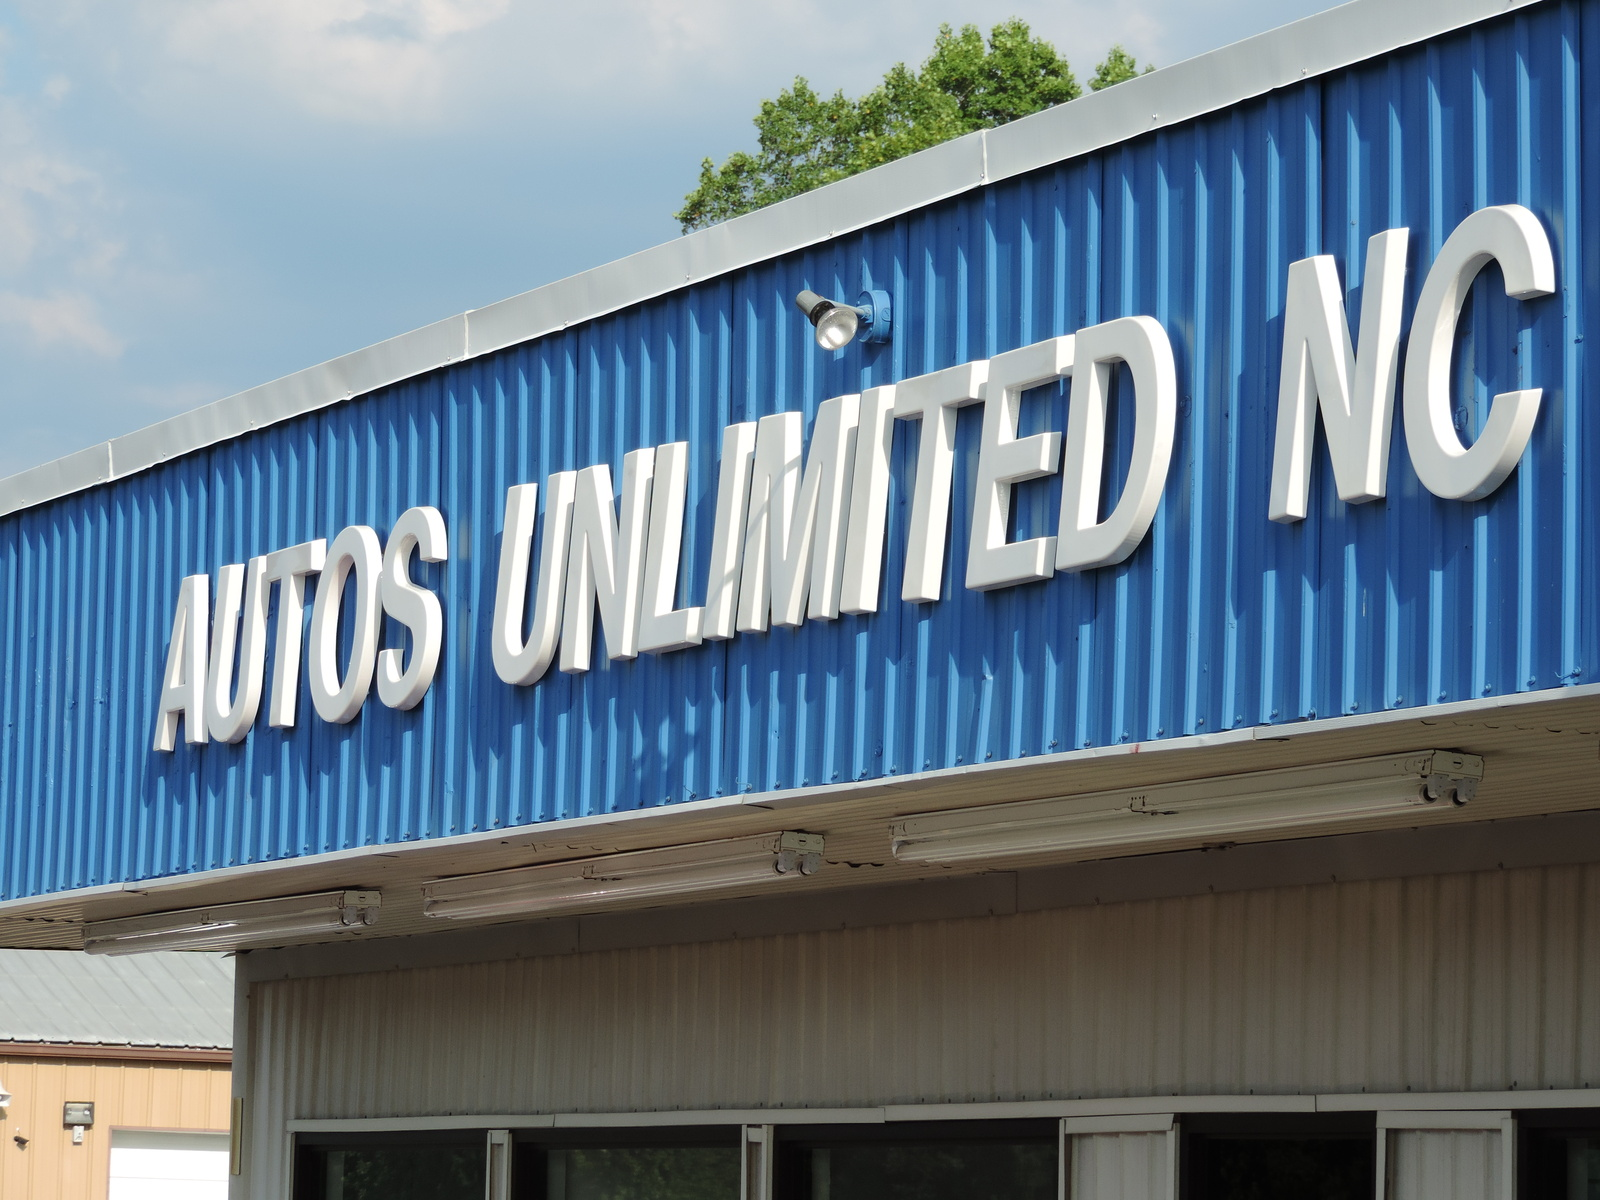 Autos Unlimited NC - Fayetteville, NC: Read Consumer ...